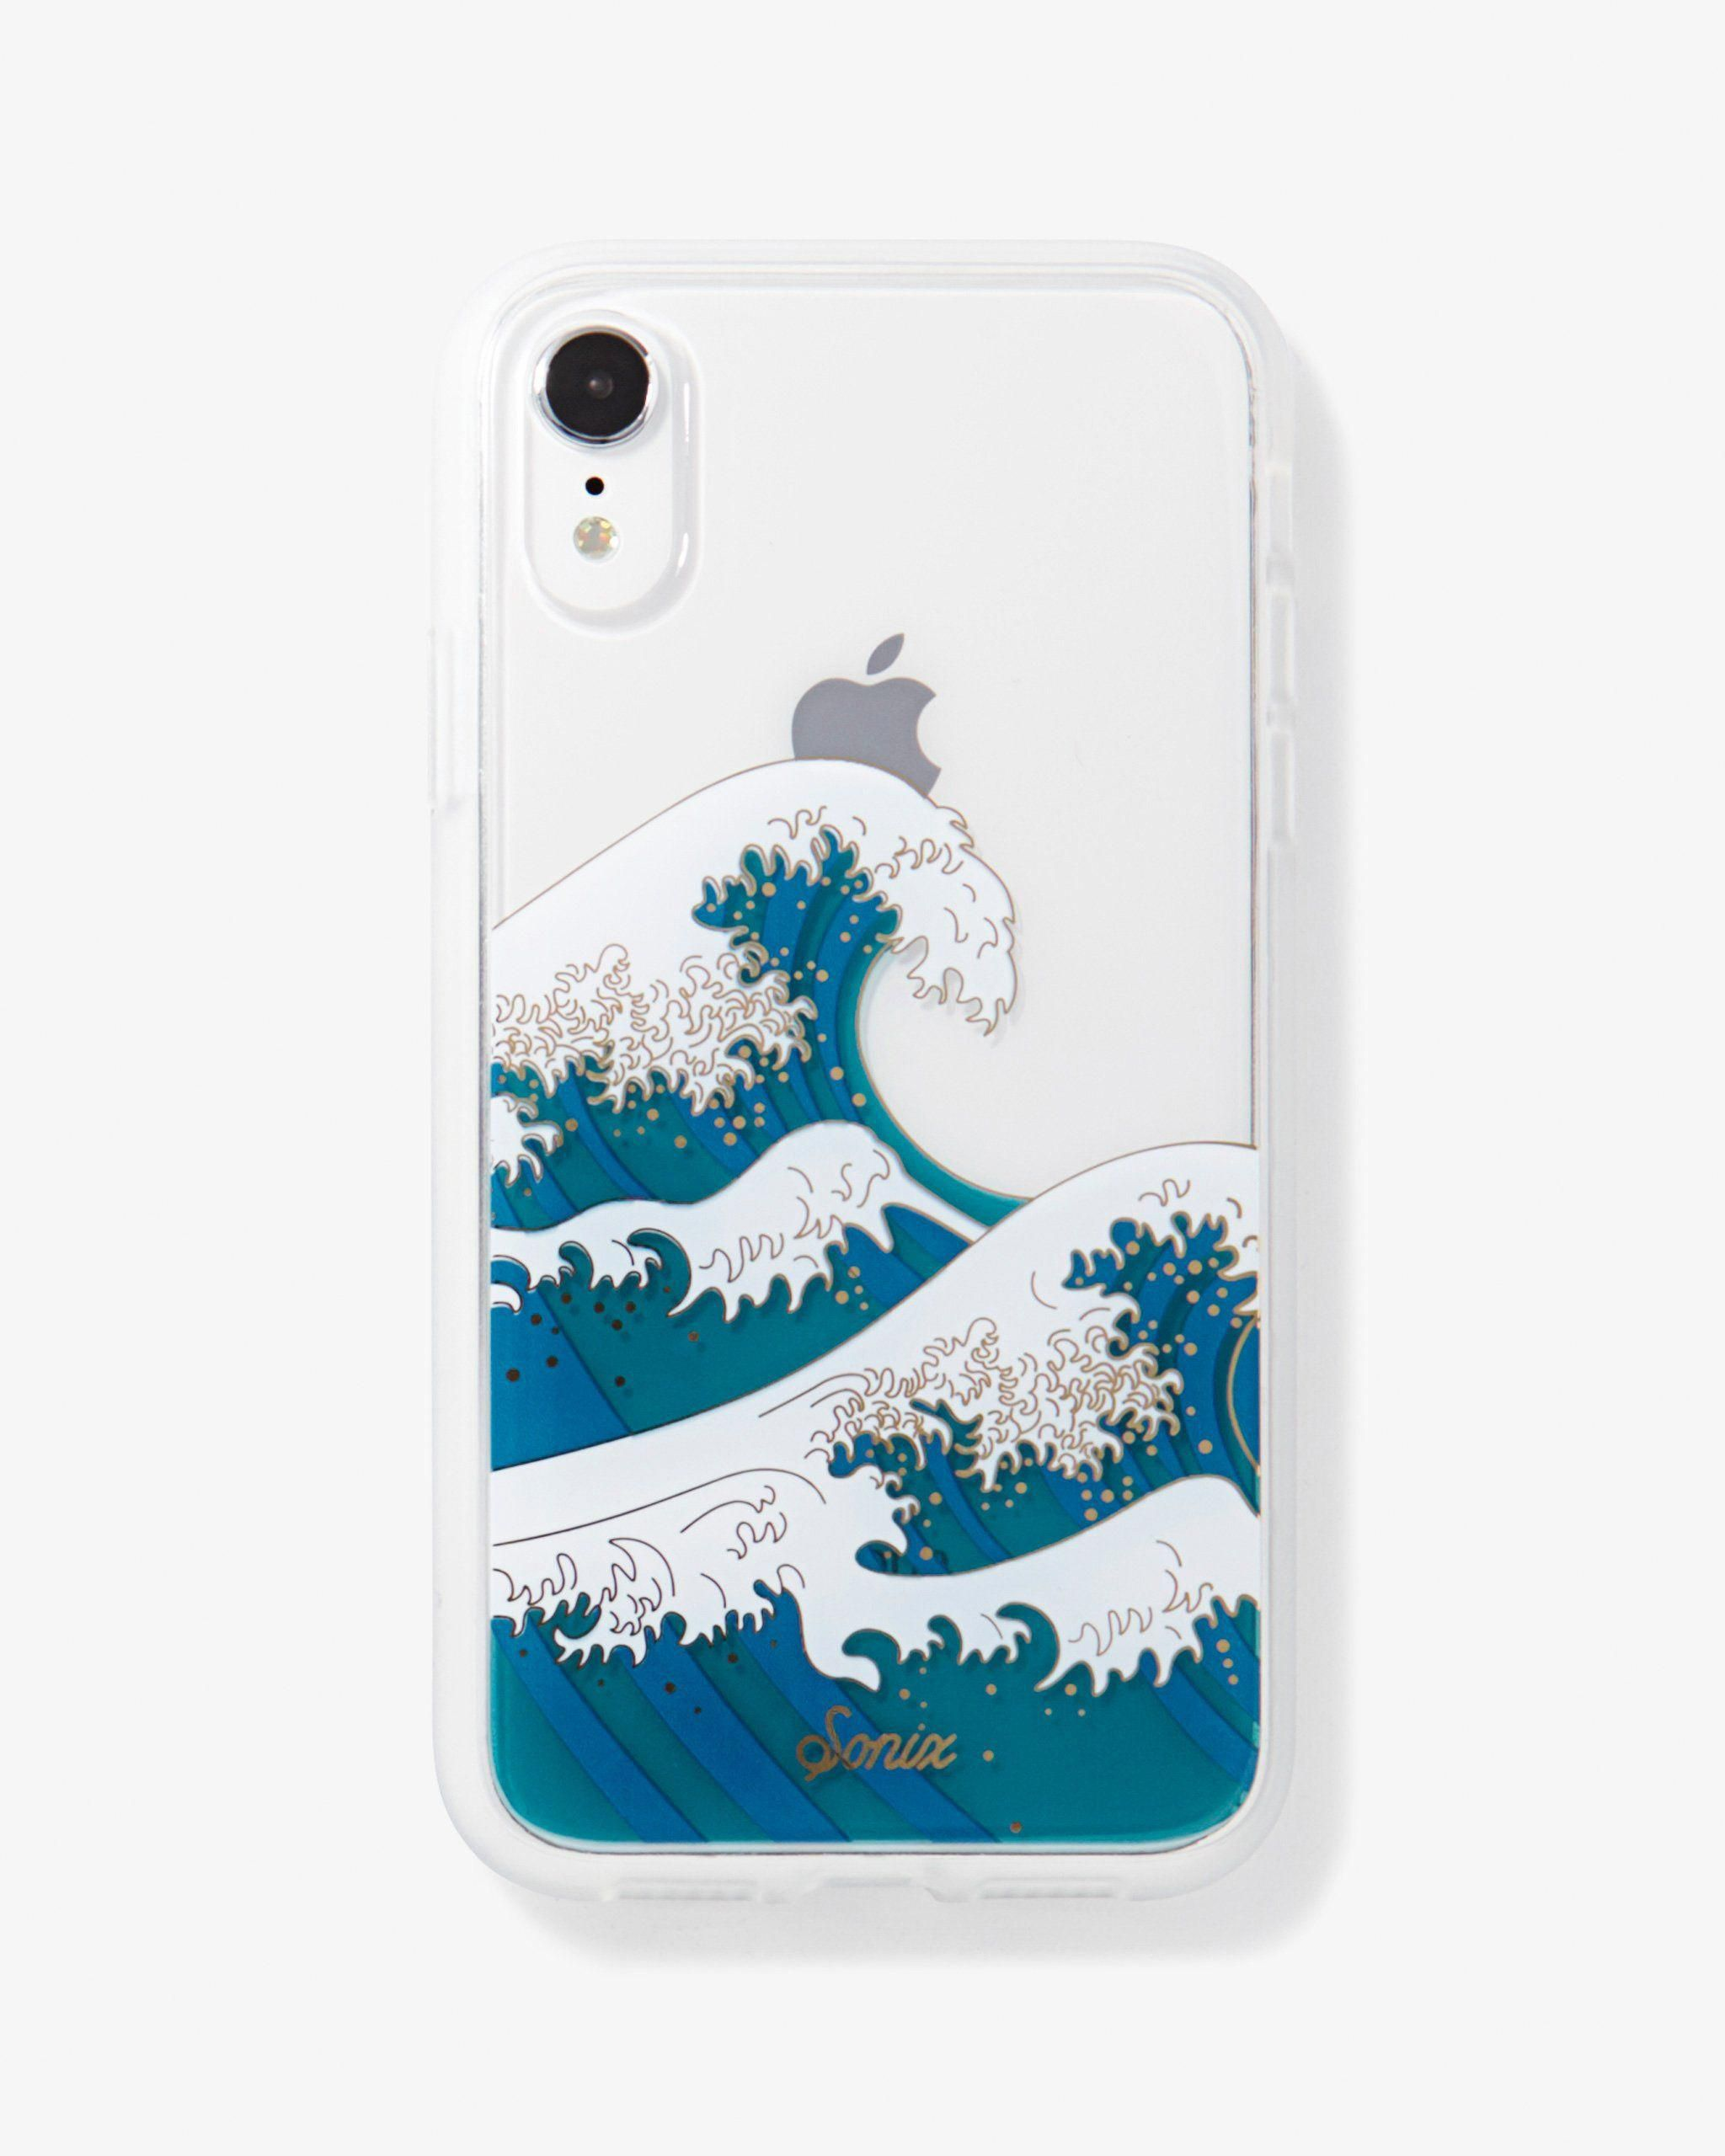 Tokyo Wave Iphone Xr Iphonex Iphone Phone Cases Sonix Case Waves Phone Case